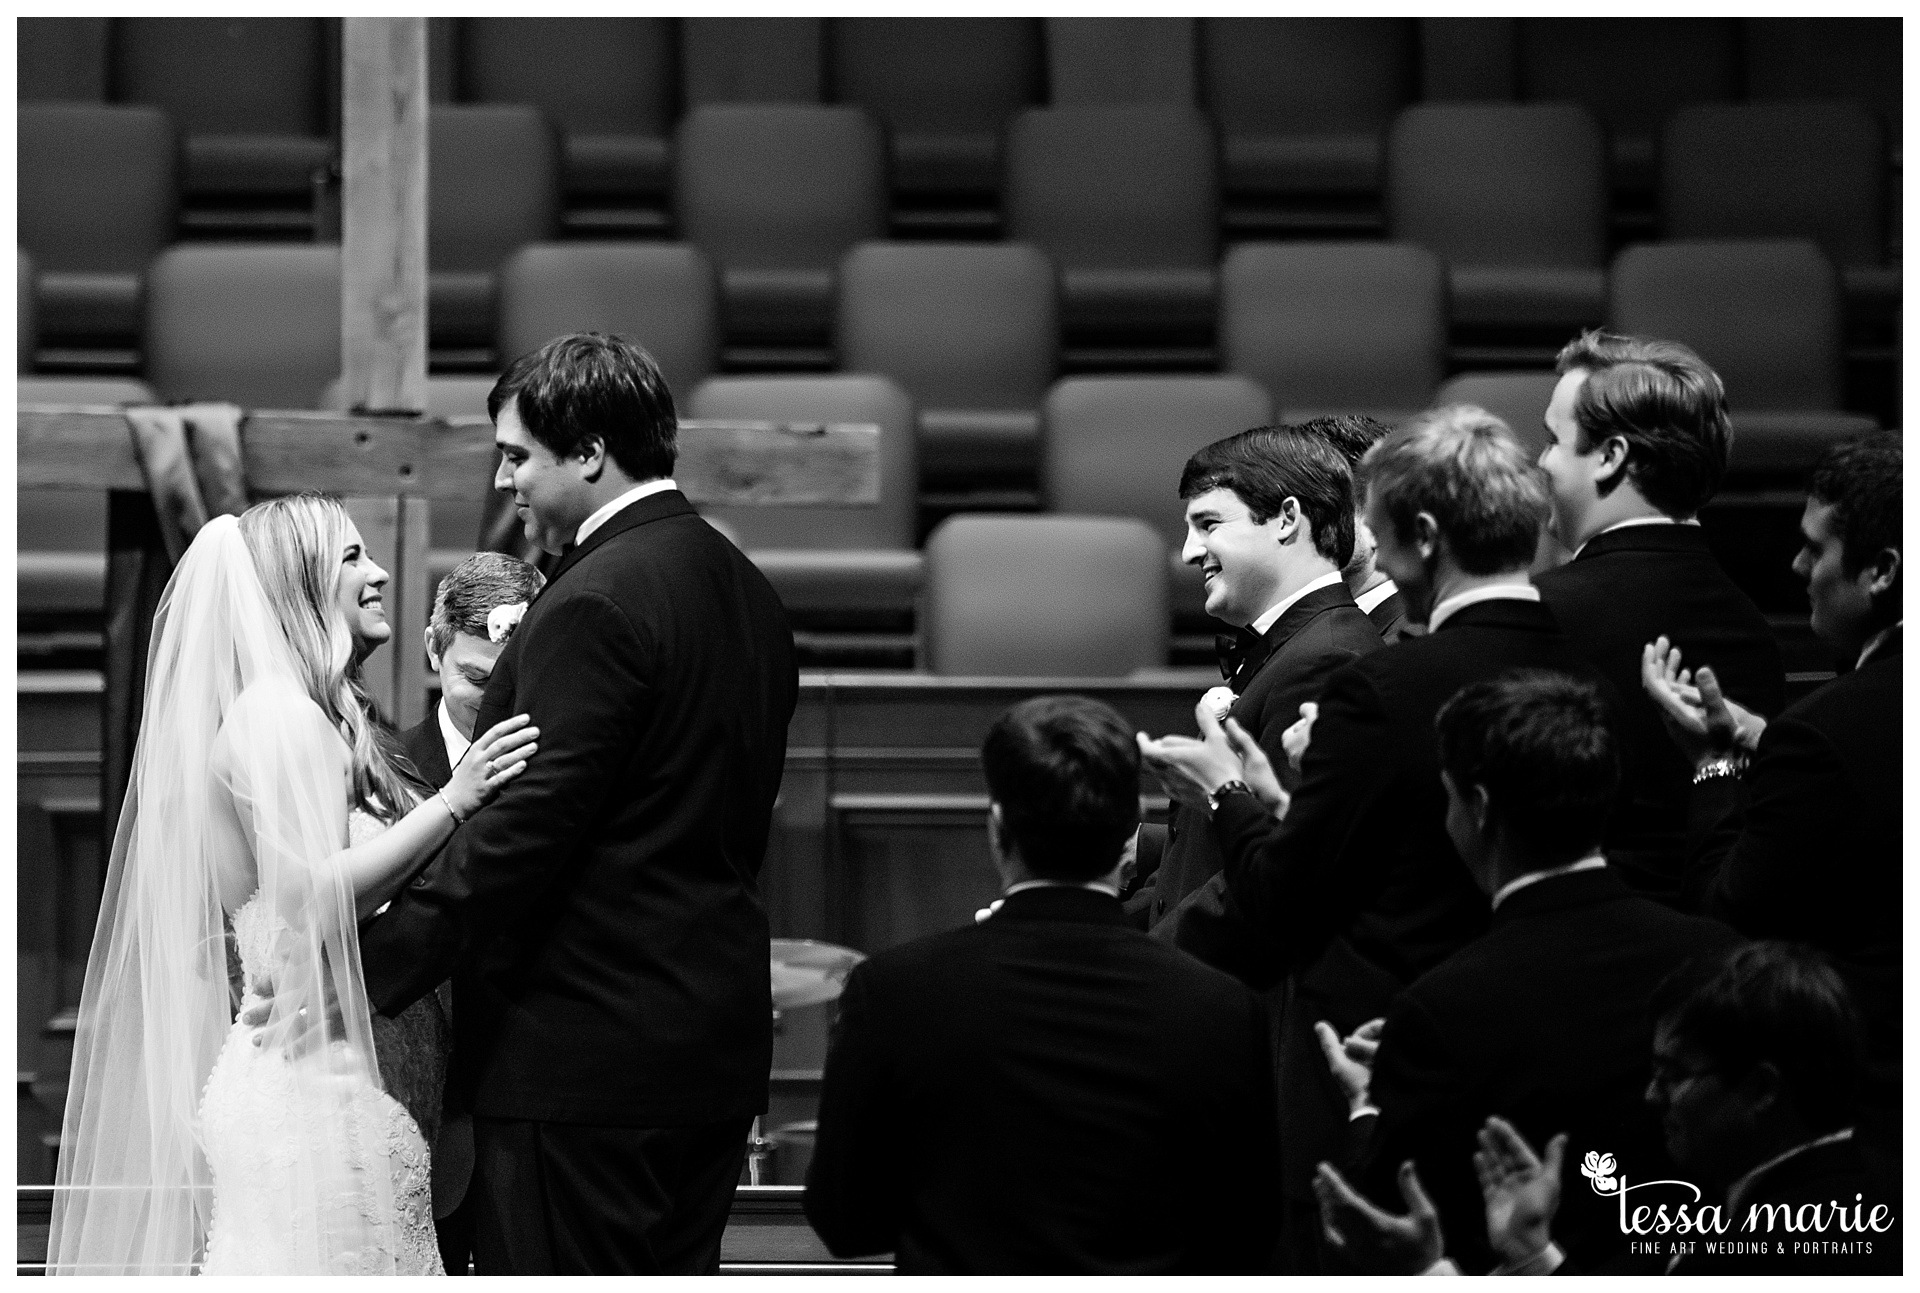 tessa_marie_weddings_legacy_story_focused_wedding_pictures_atlanta_wedding_photographer_0115